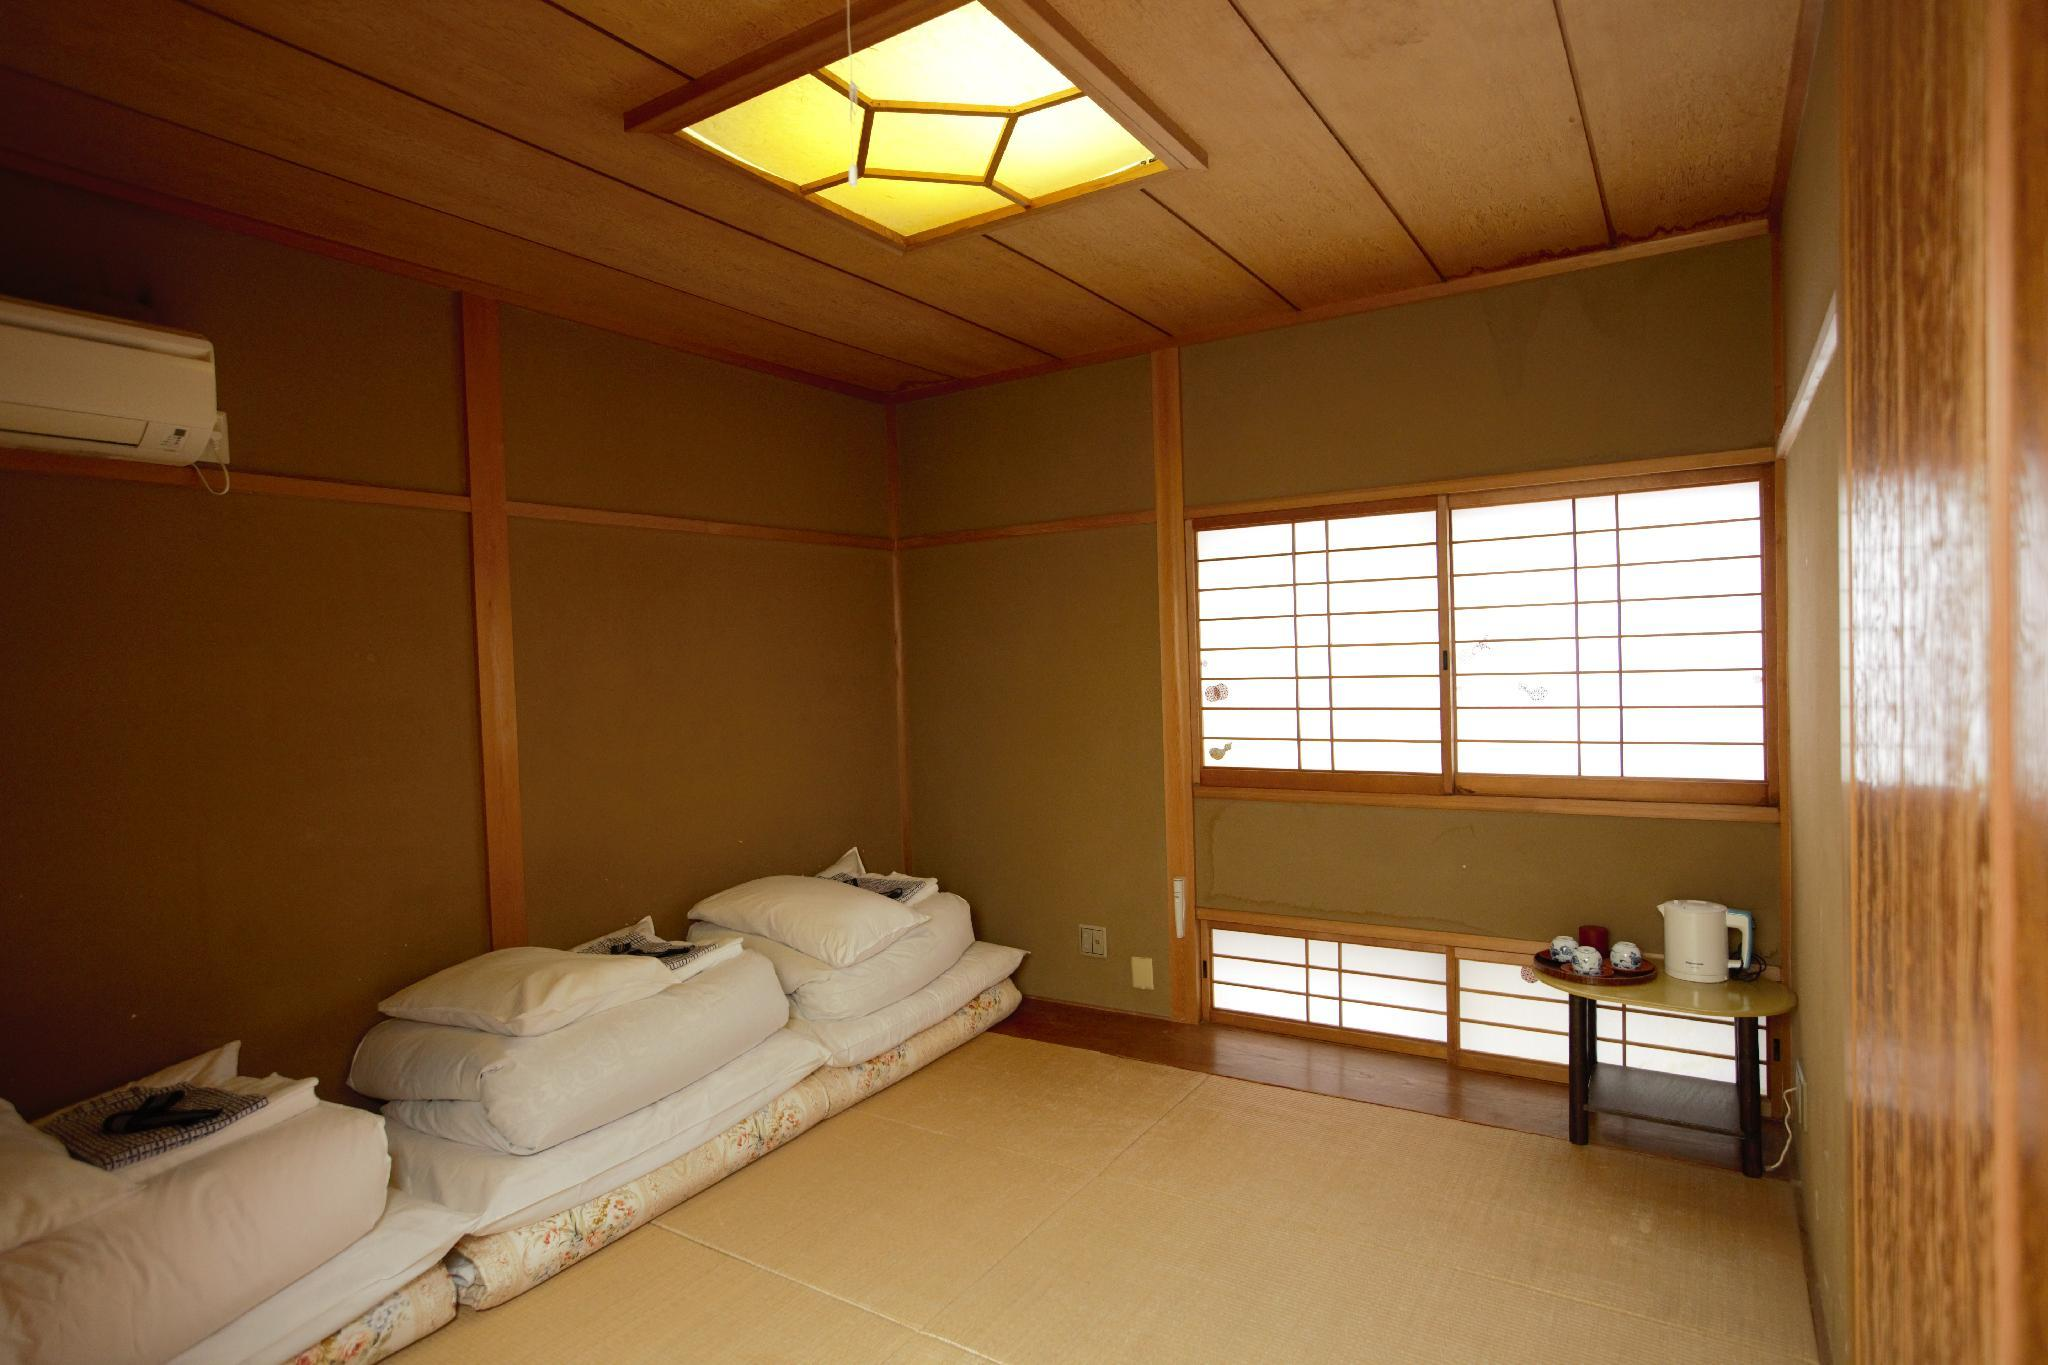 Economy Japanese Style Room for 4 People